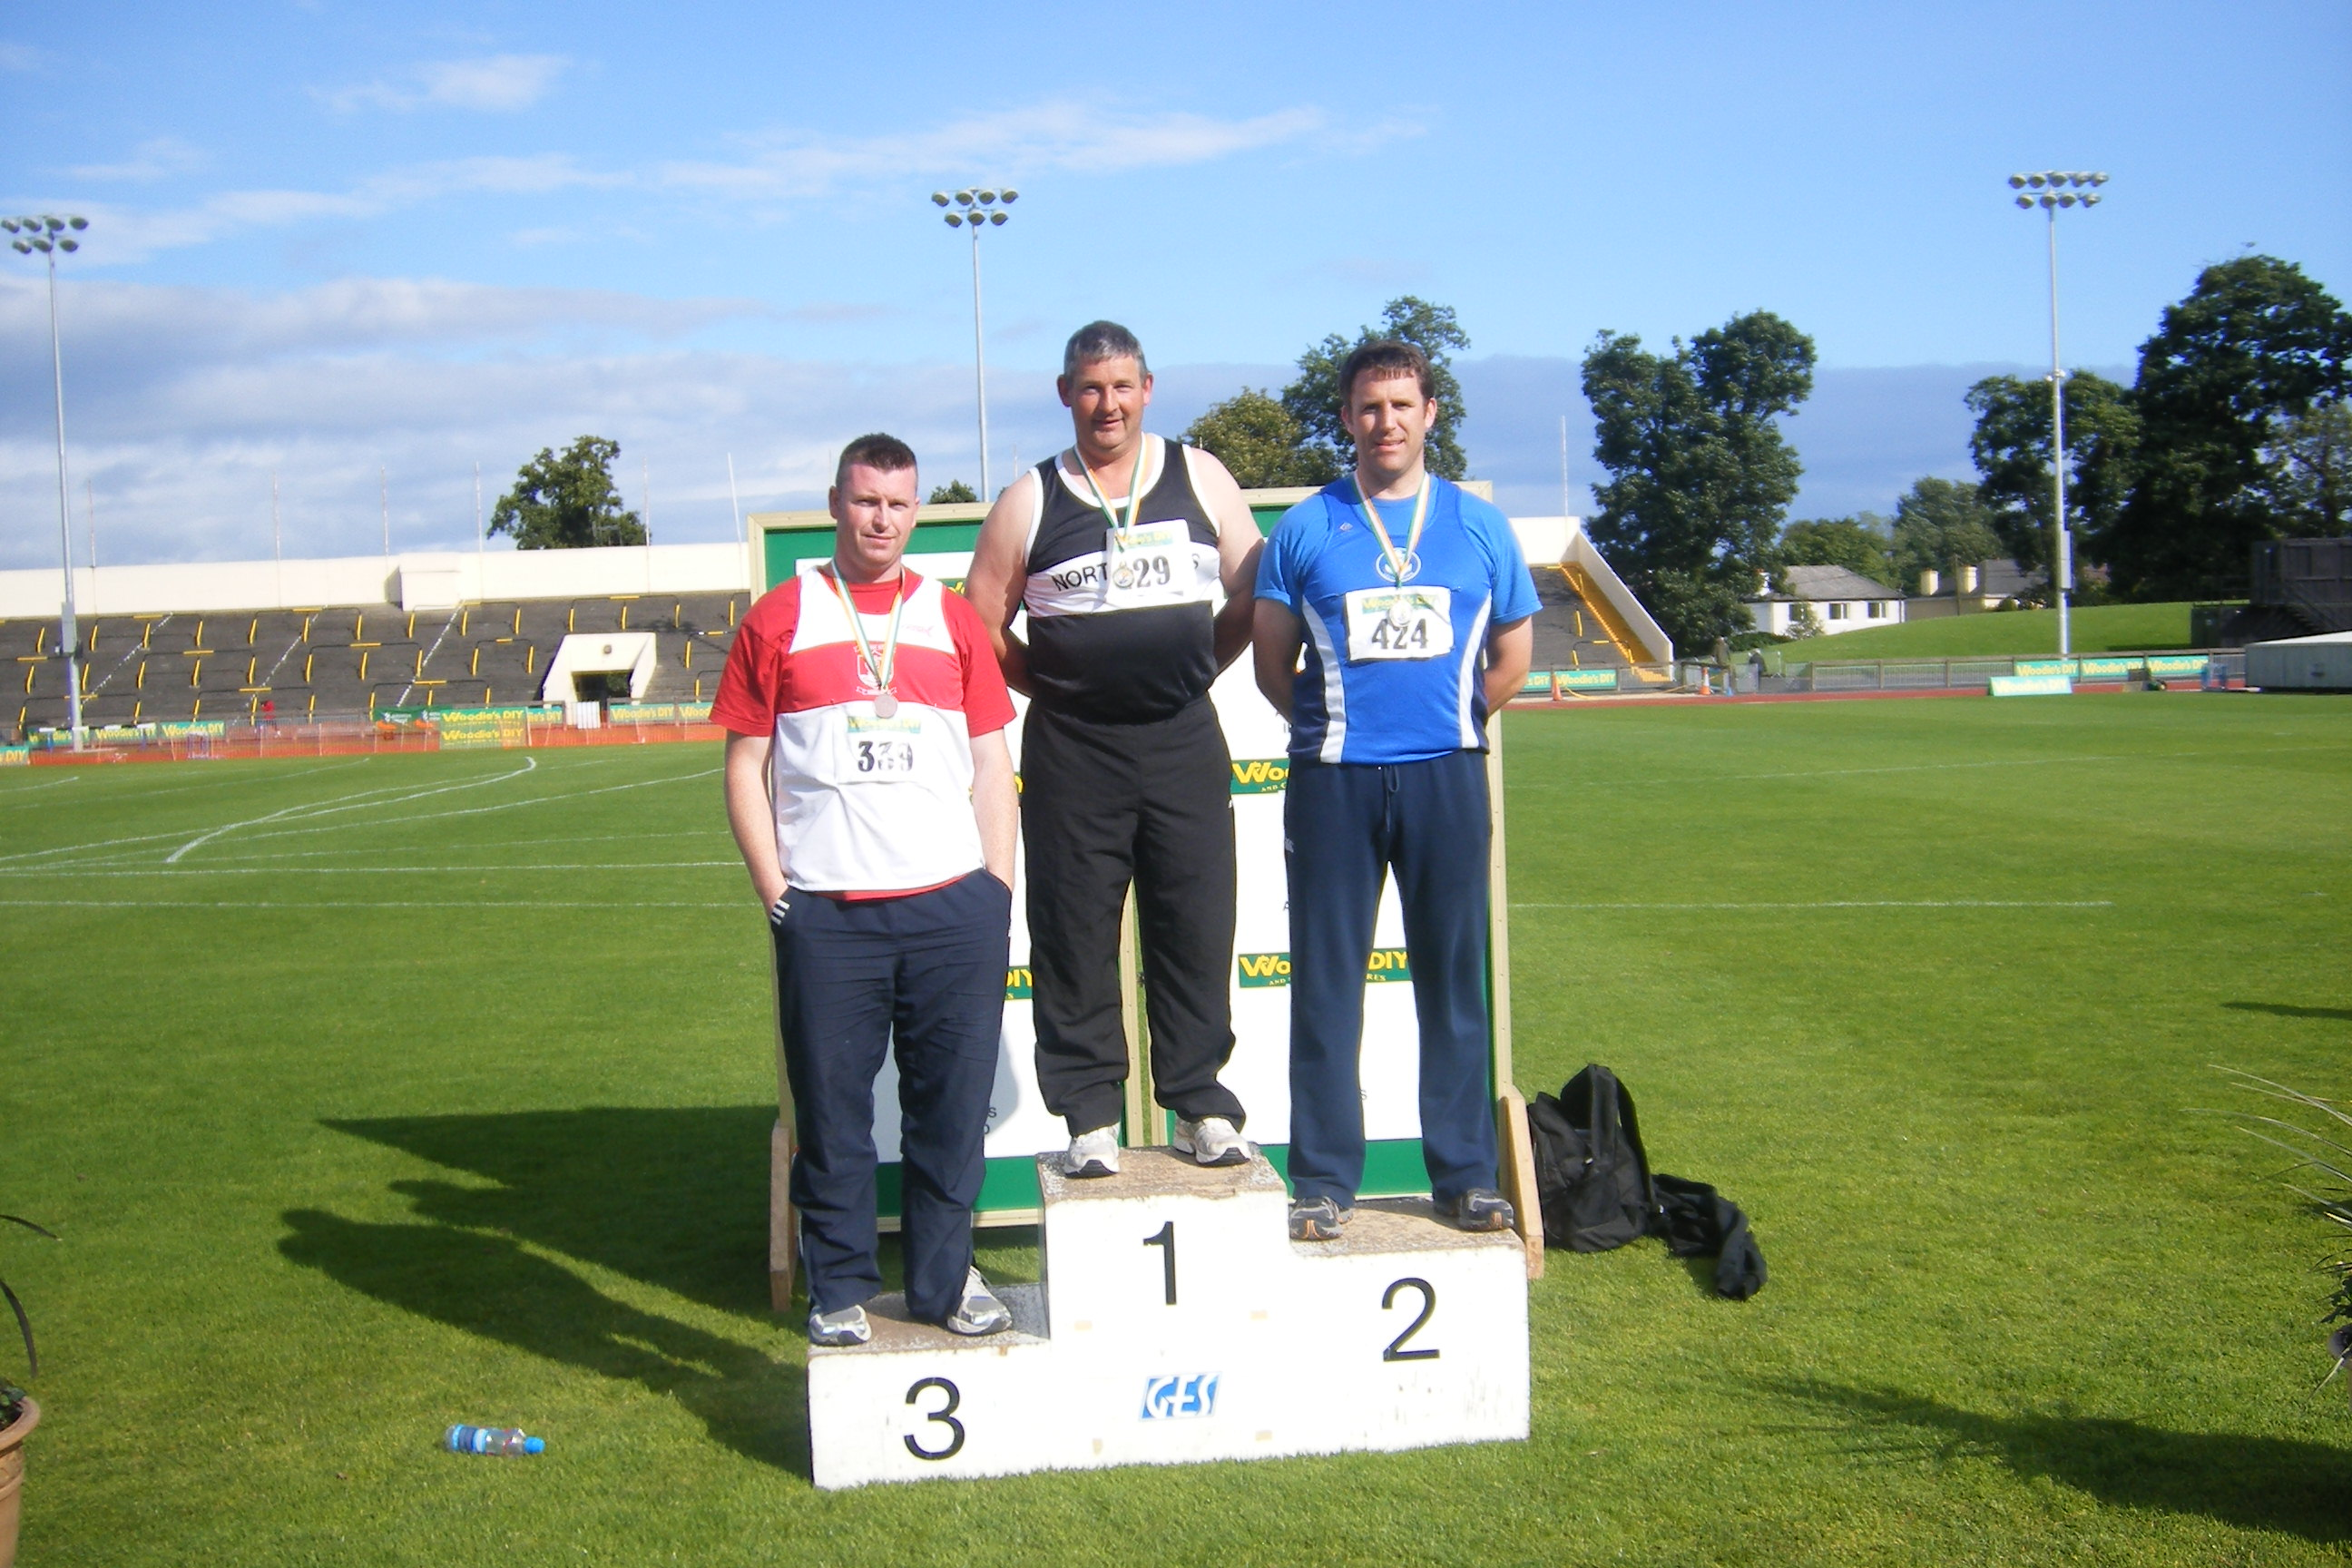 seamus-fitzpatrick-1st-barry-delany-2nd-sean-breatnach-after-receiving-their-medals-in-the-56lb-wt4height